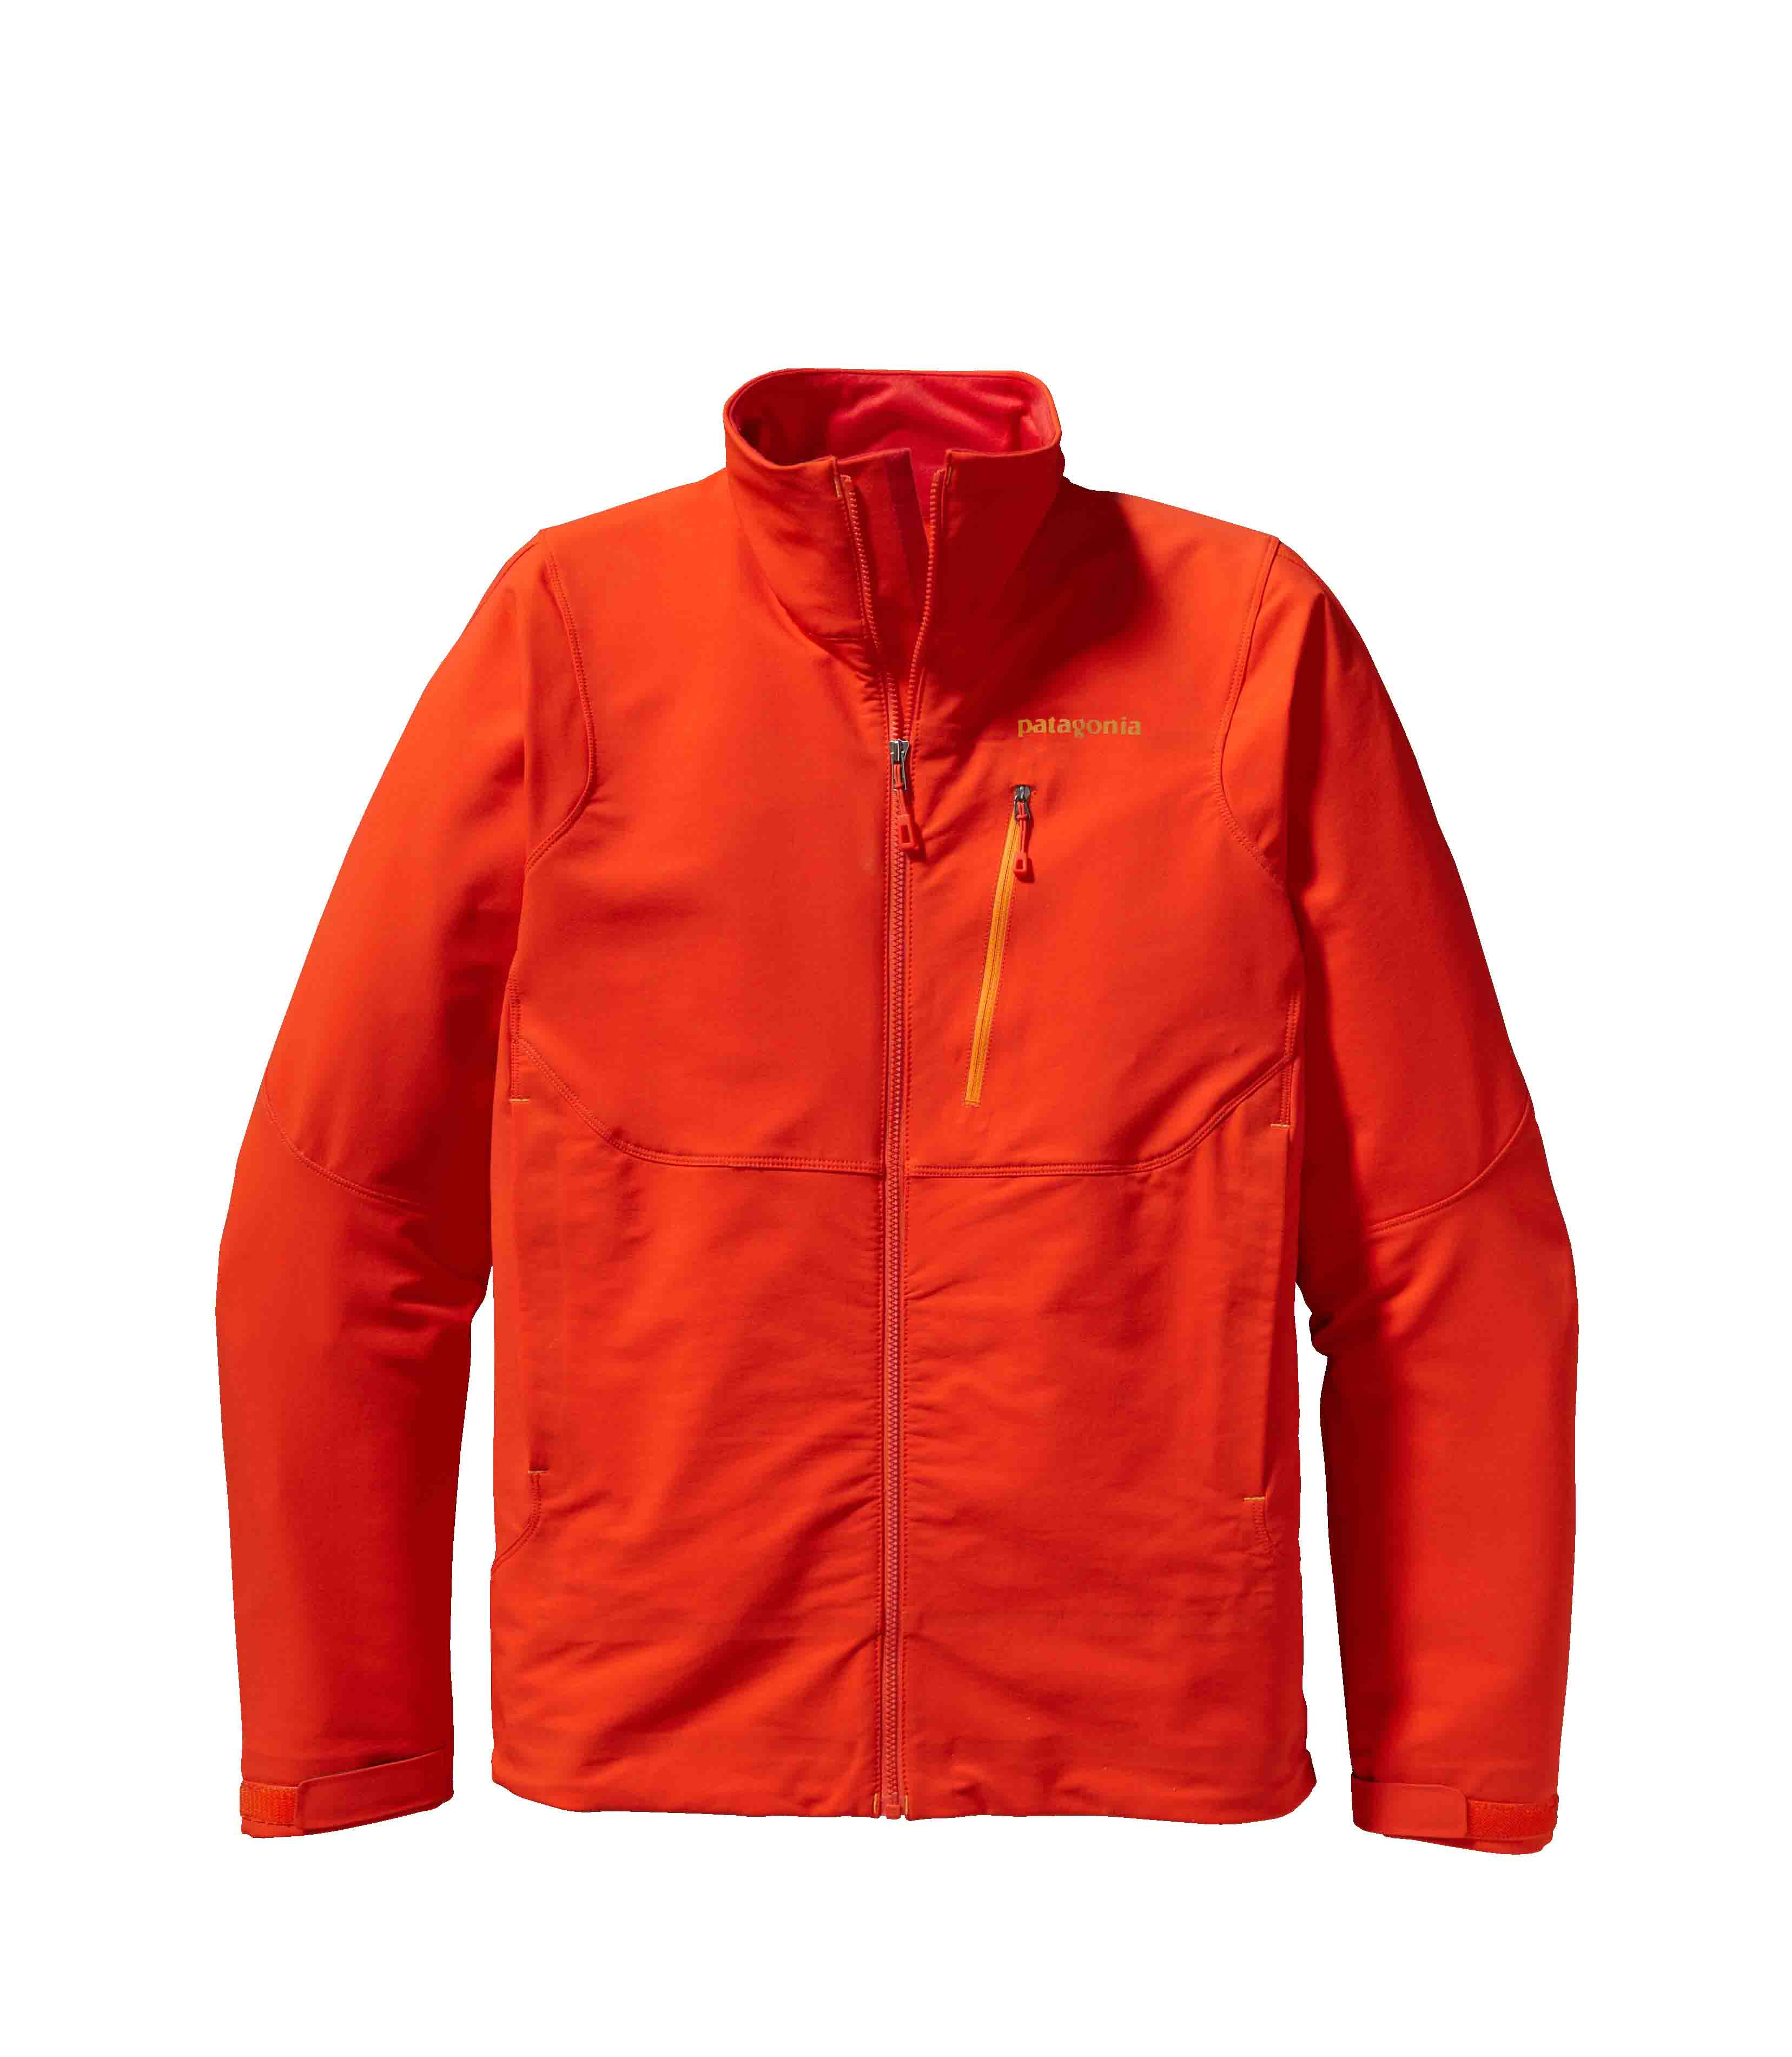 Patagonia men's Alpine Guide Jacket - The Alpine Guide Jacket and Pants are highly durable, breathable soft shells made of a new wind-resistant Polartecr Power Shieldr Stretch Woven fabric to both protect and vent on extended, demanding climbs or ski tours. Polartecr Power Shieldr Stretch Wovens are enhanced with Polartecr Hardfacer technology to dramatically increase abrasion and snag/pick resistance, improve lasting durable water repellency, reduce moisture gain in wet conditions and accelerate dry-times. Polartecr Power Shieldr Stretch Woven fabrics offer a dramatic improvement on the original soft shell concept - single layer woven fabrics that deliver excellent weather protection, high breathability and lasting durability for harsh use.